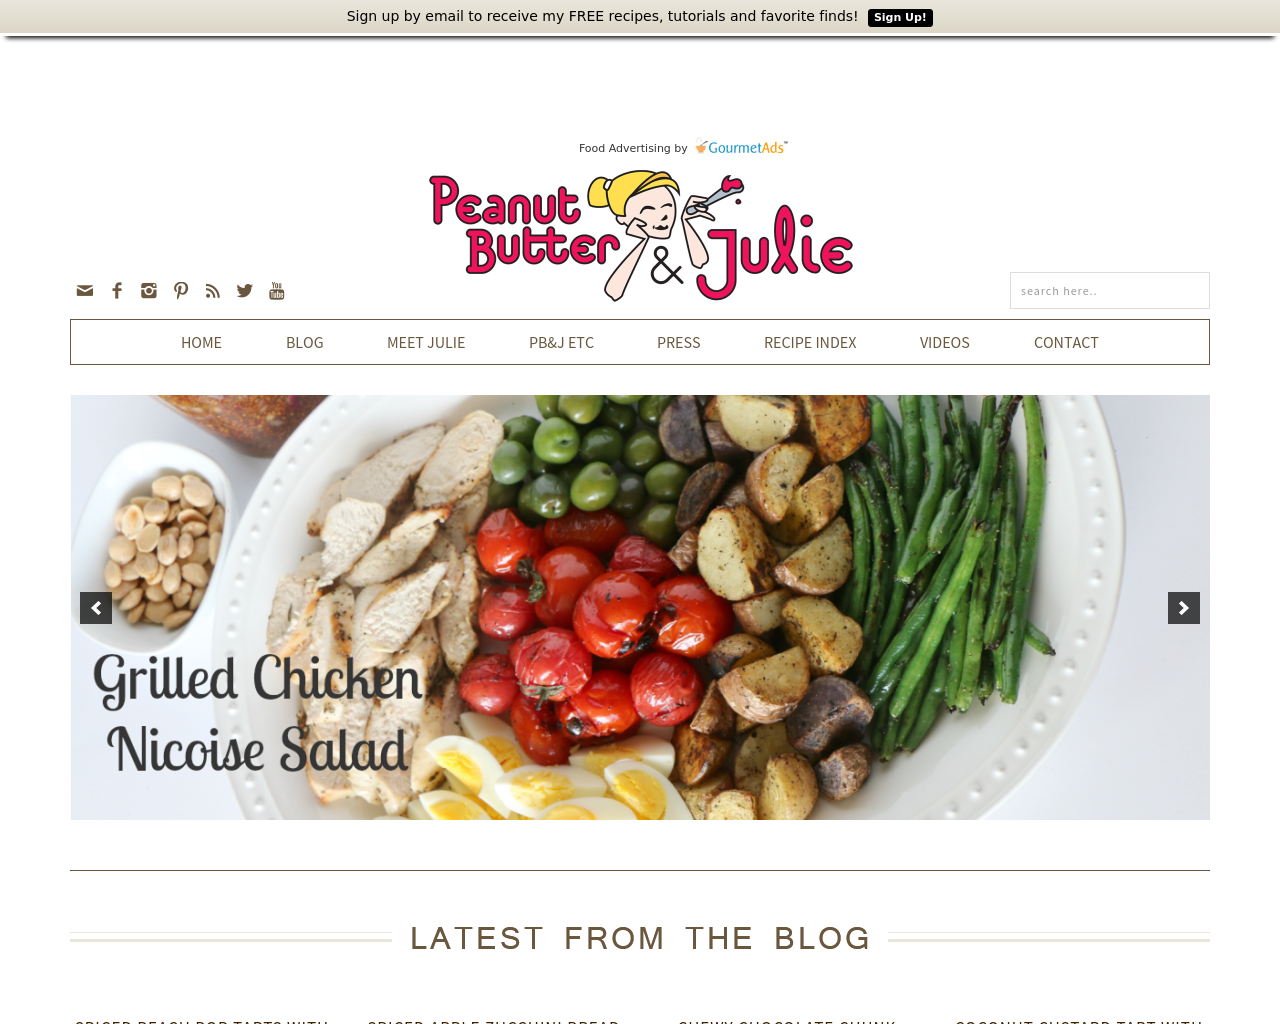 Peanut-Butter-And-Julie-Advertising-Reviews-Pricing